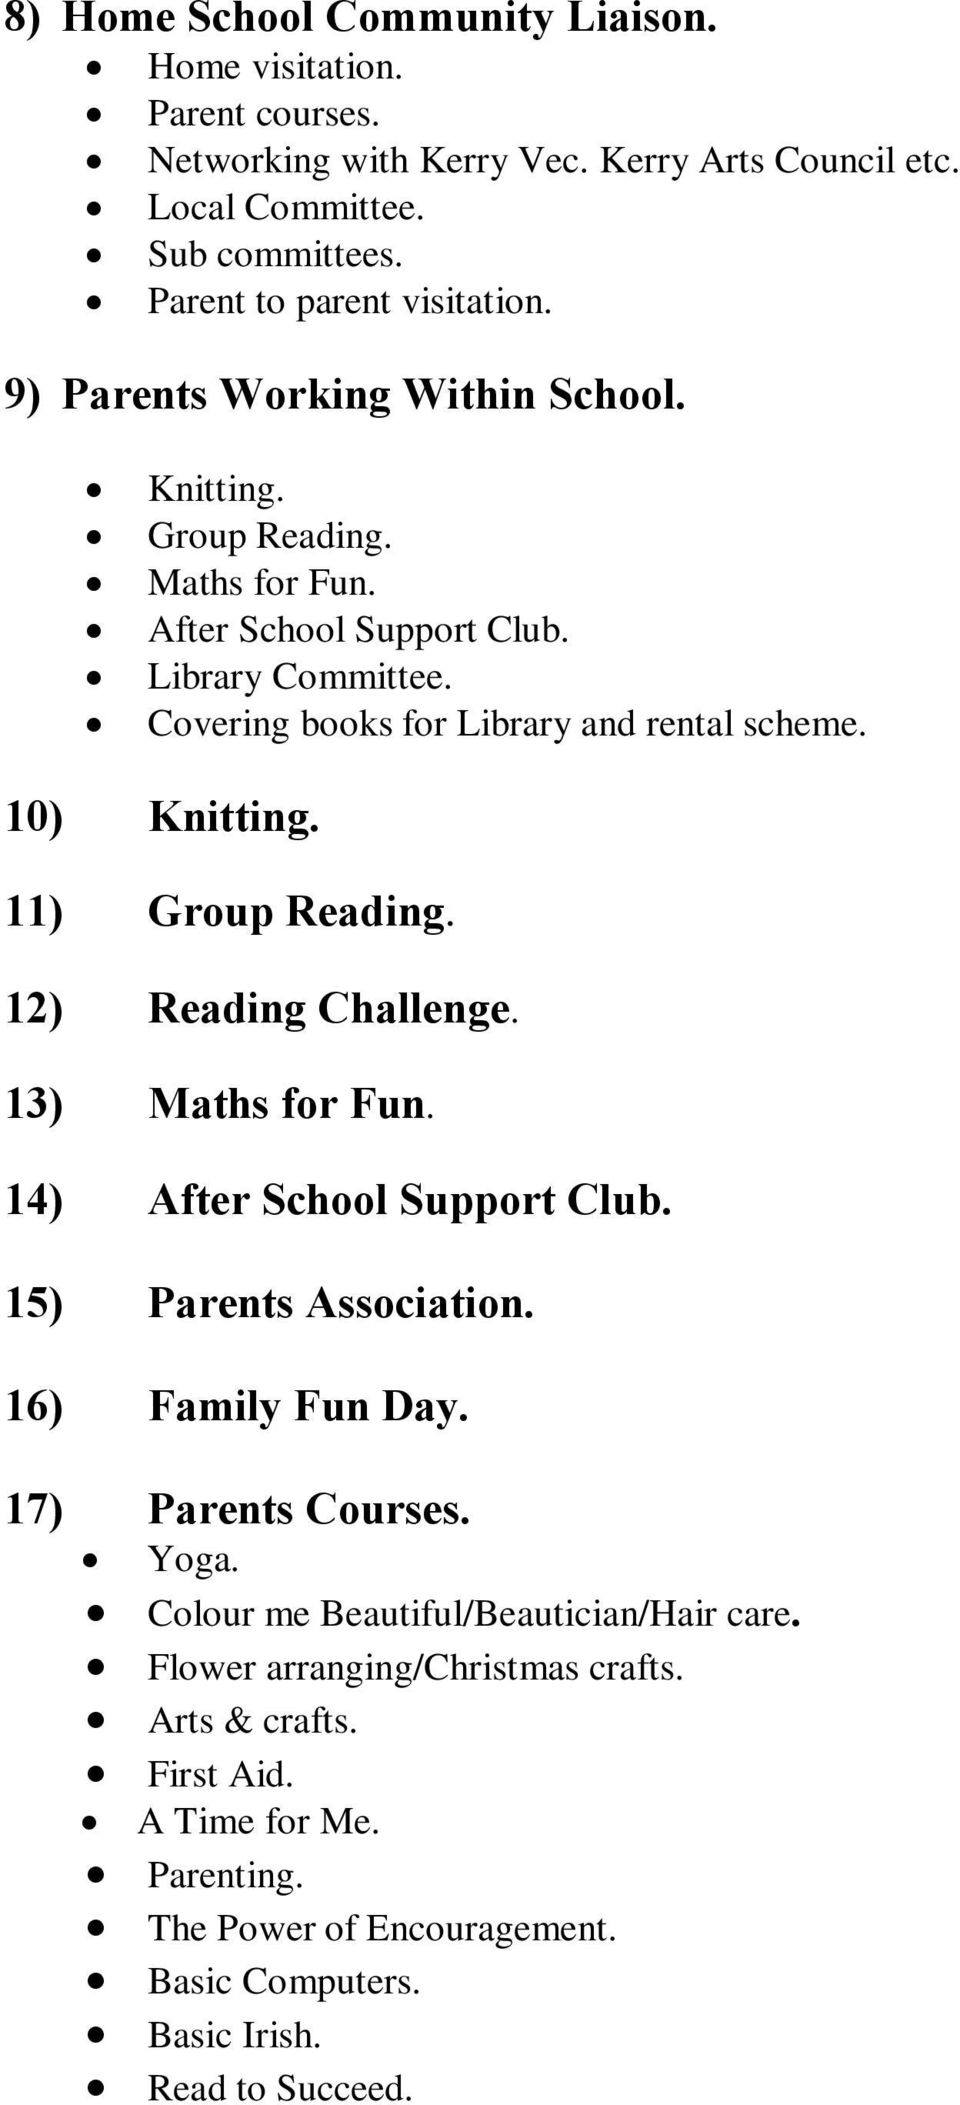 11) Group Reading. 12) Reading Challenge. 13) Maths for Fun. 14) After School Support Club. 15) Parents Association. 16) Family Fun Day. 17) Parents Courses. Yoga.